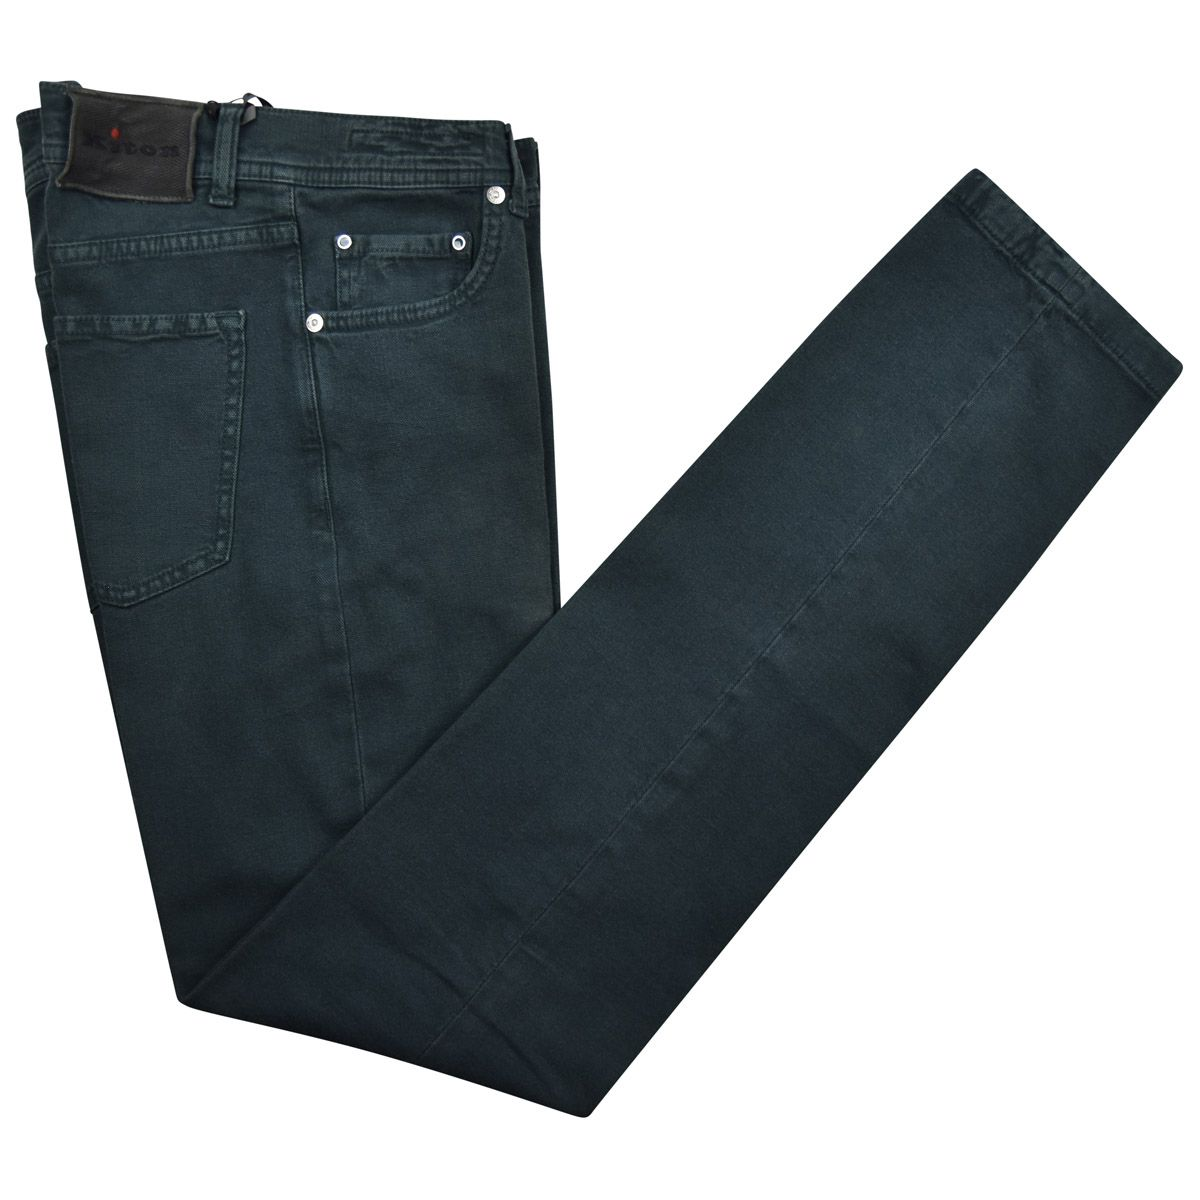 I just love these kiton jeans.jpg